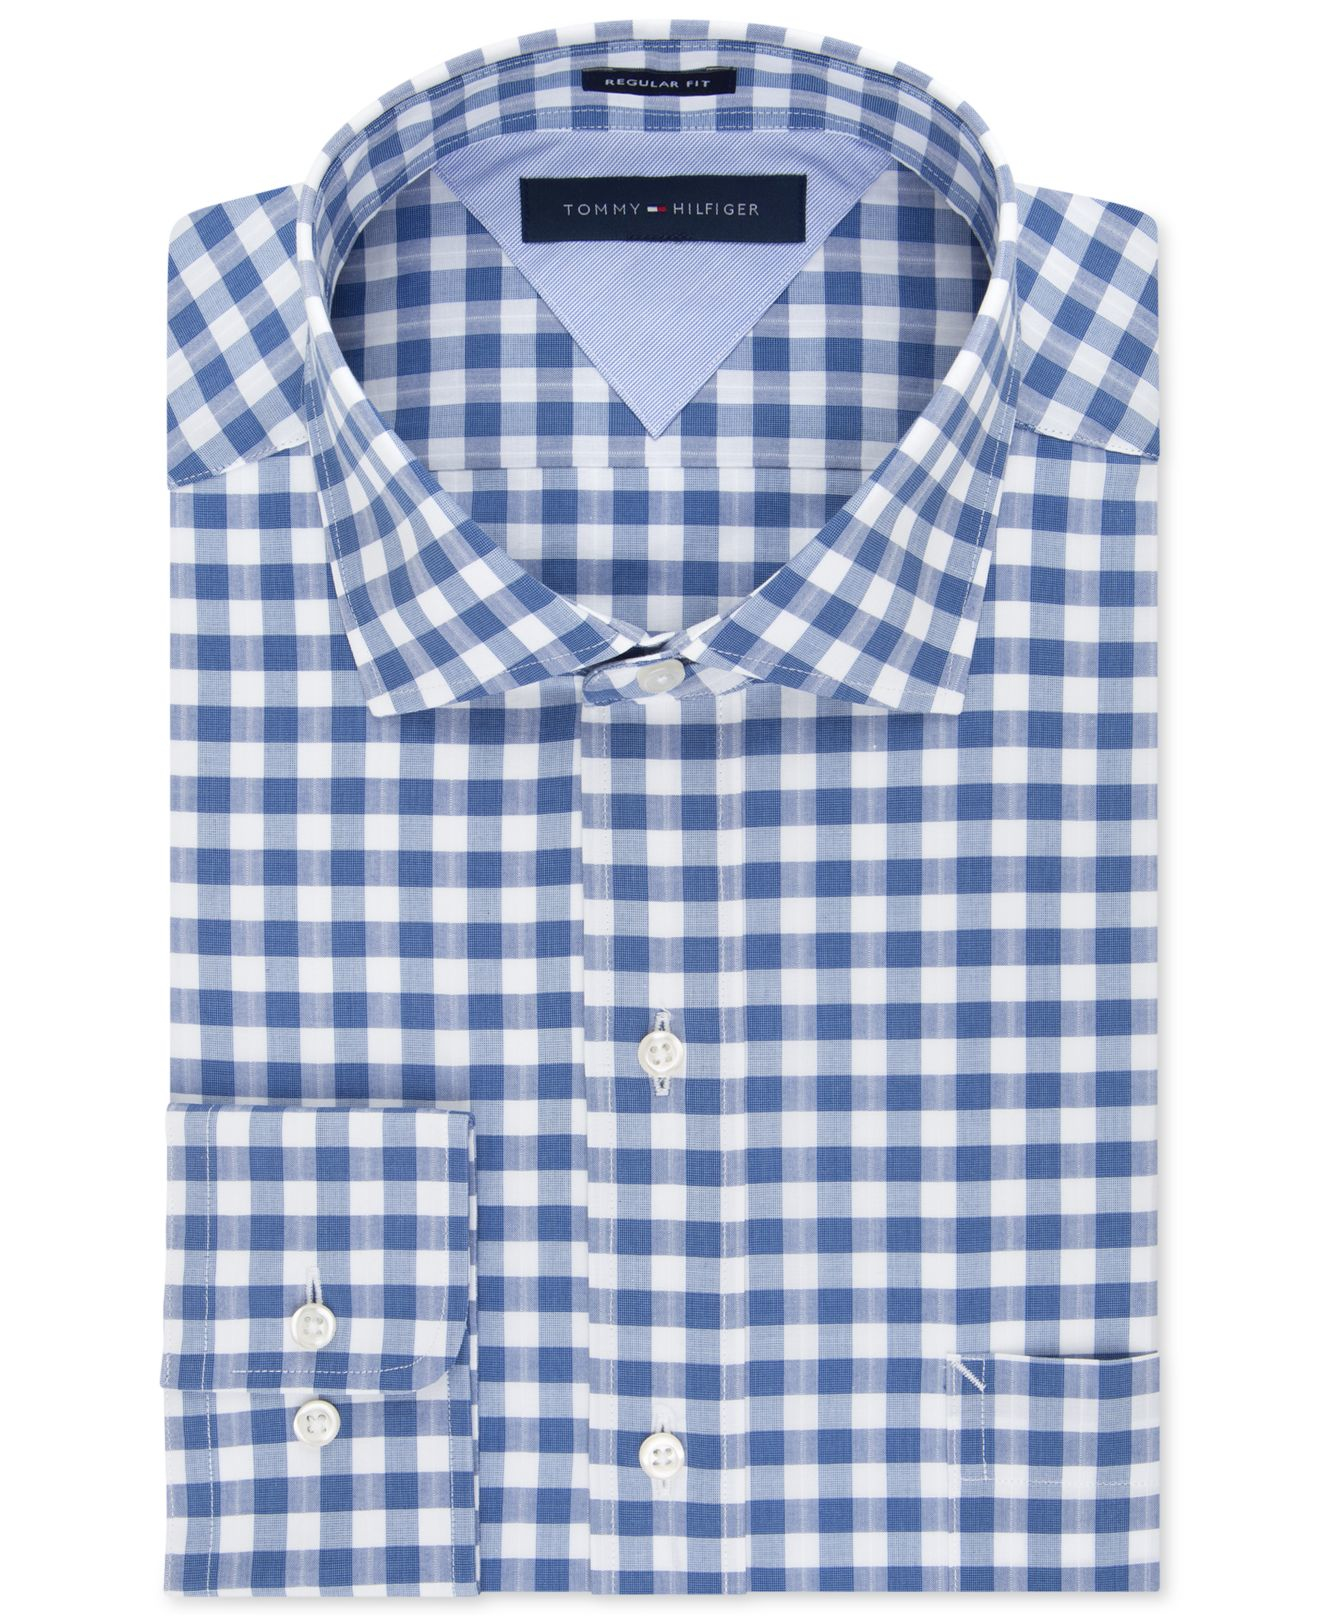 tommy hilfiger easy care indigo gingham dress shirt in